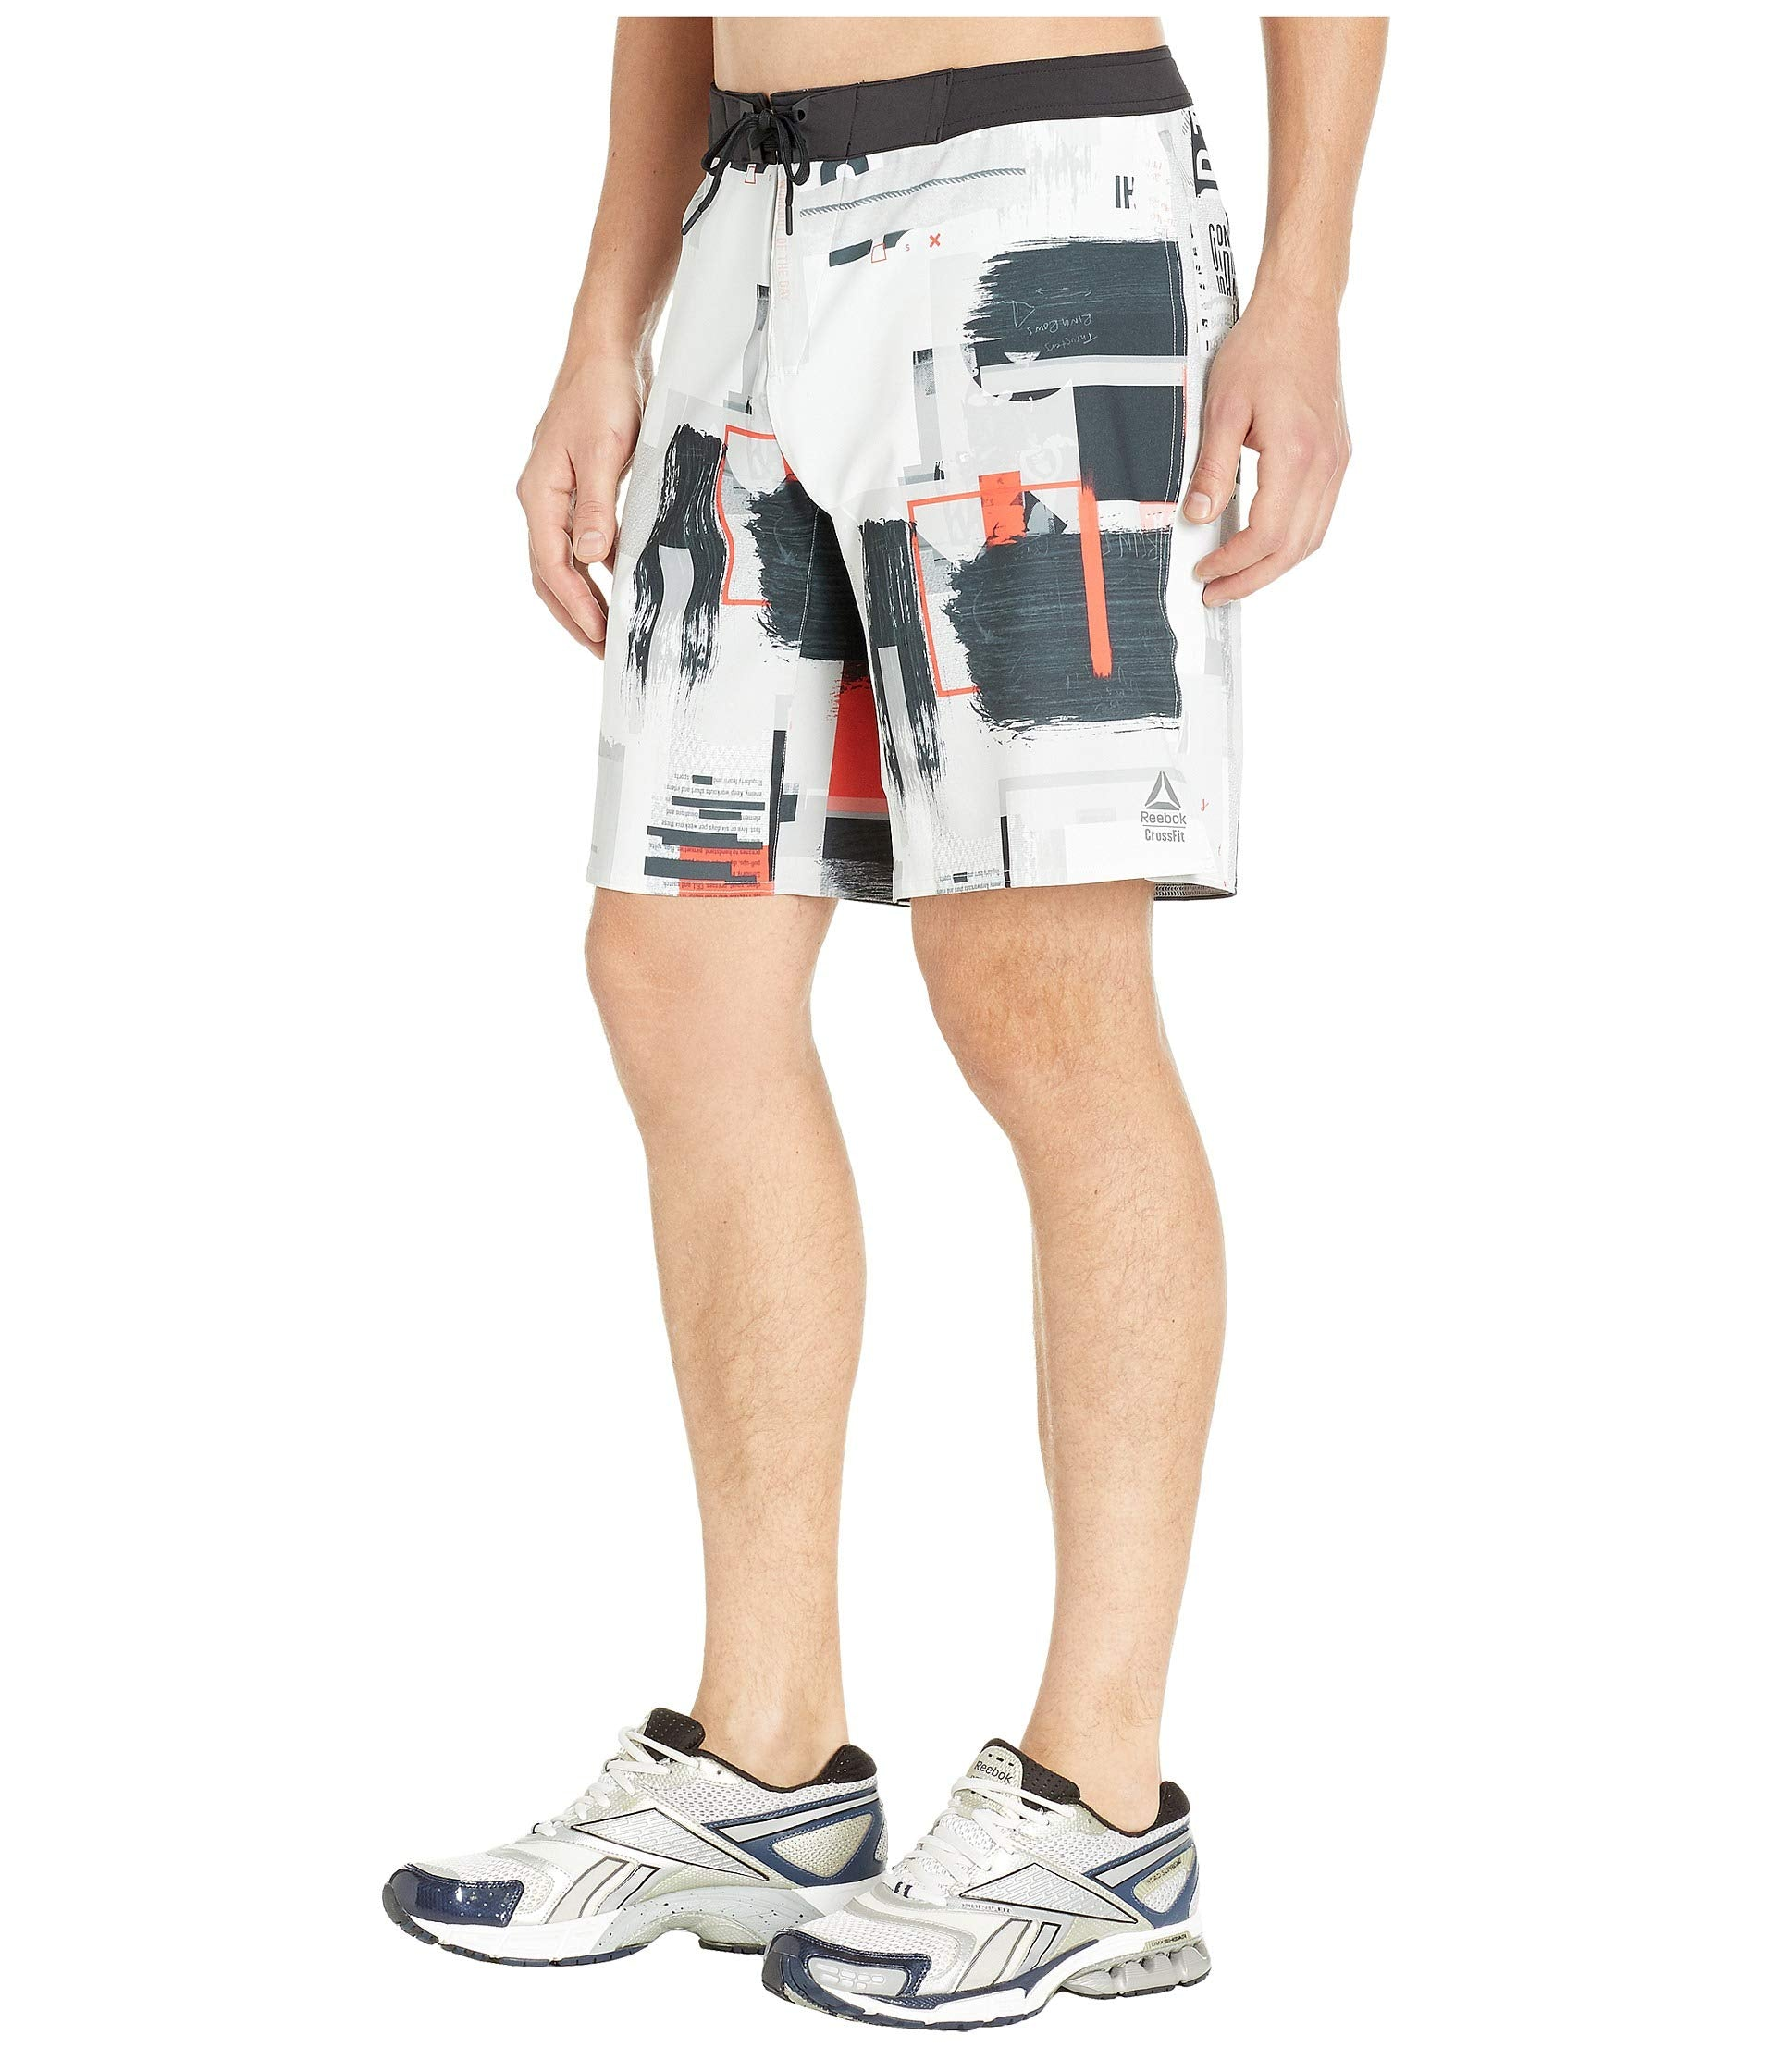 DIGITAL CROSSFIT SHORTS REEBOK EPIC CORDLOCK